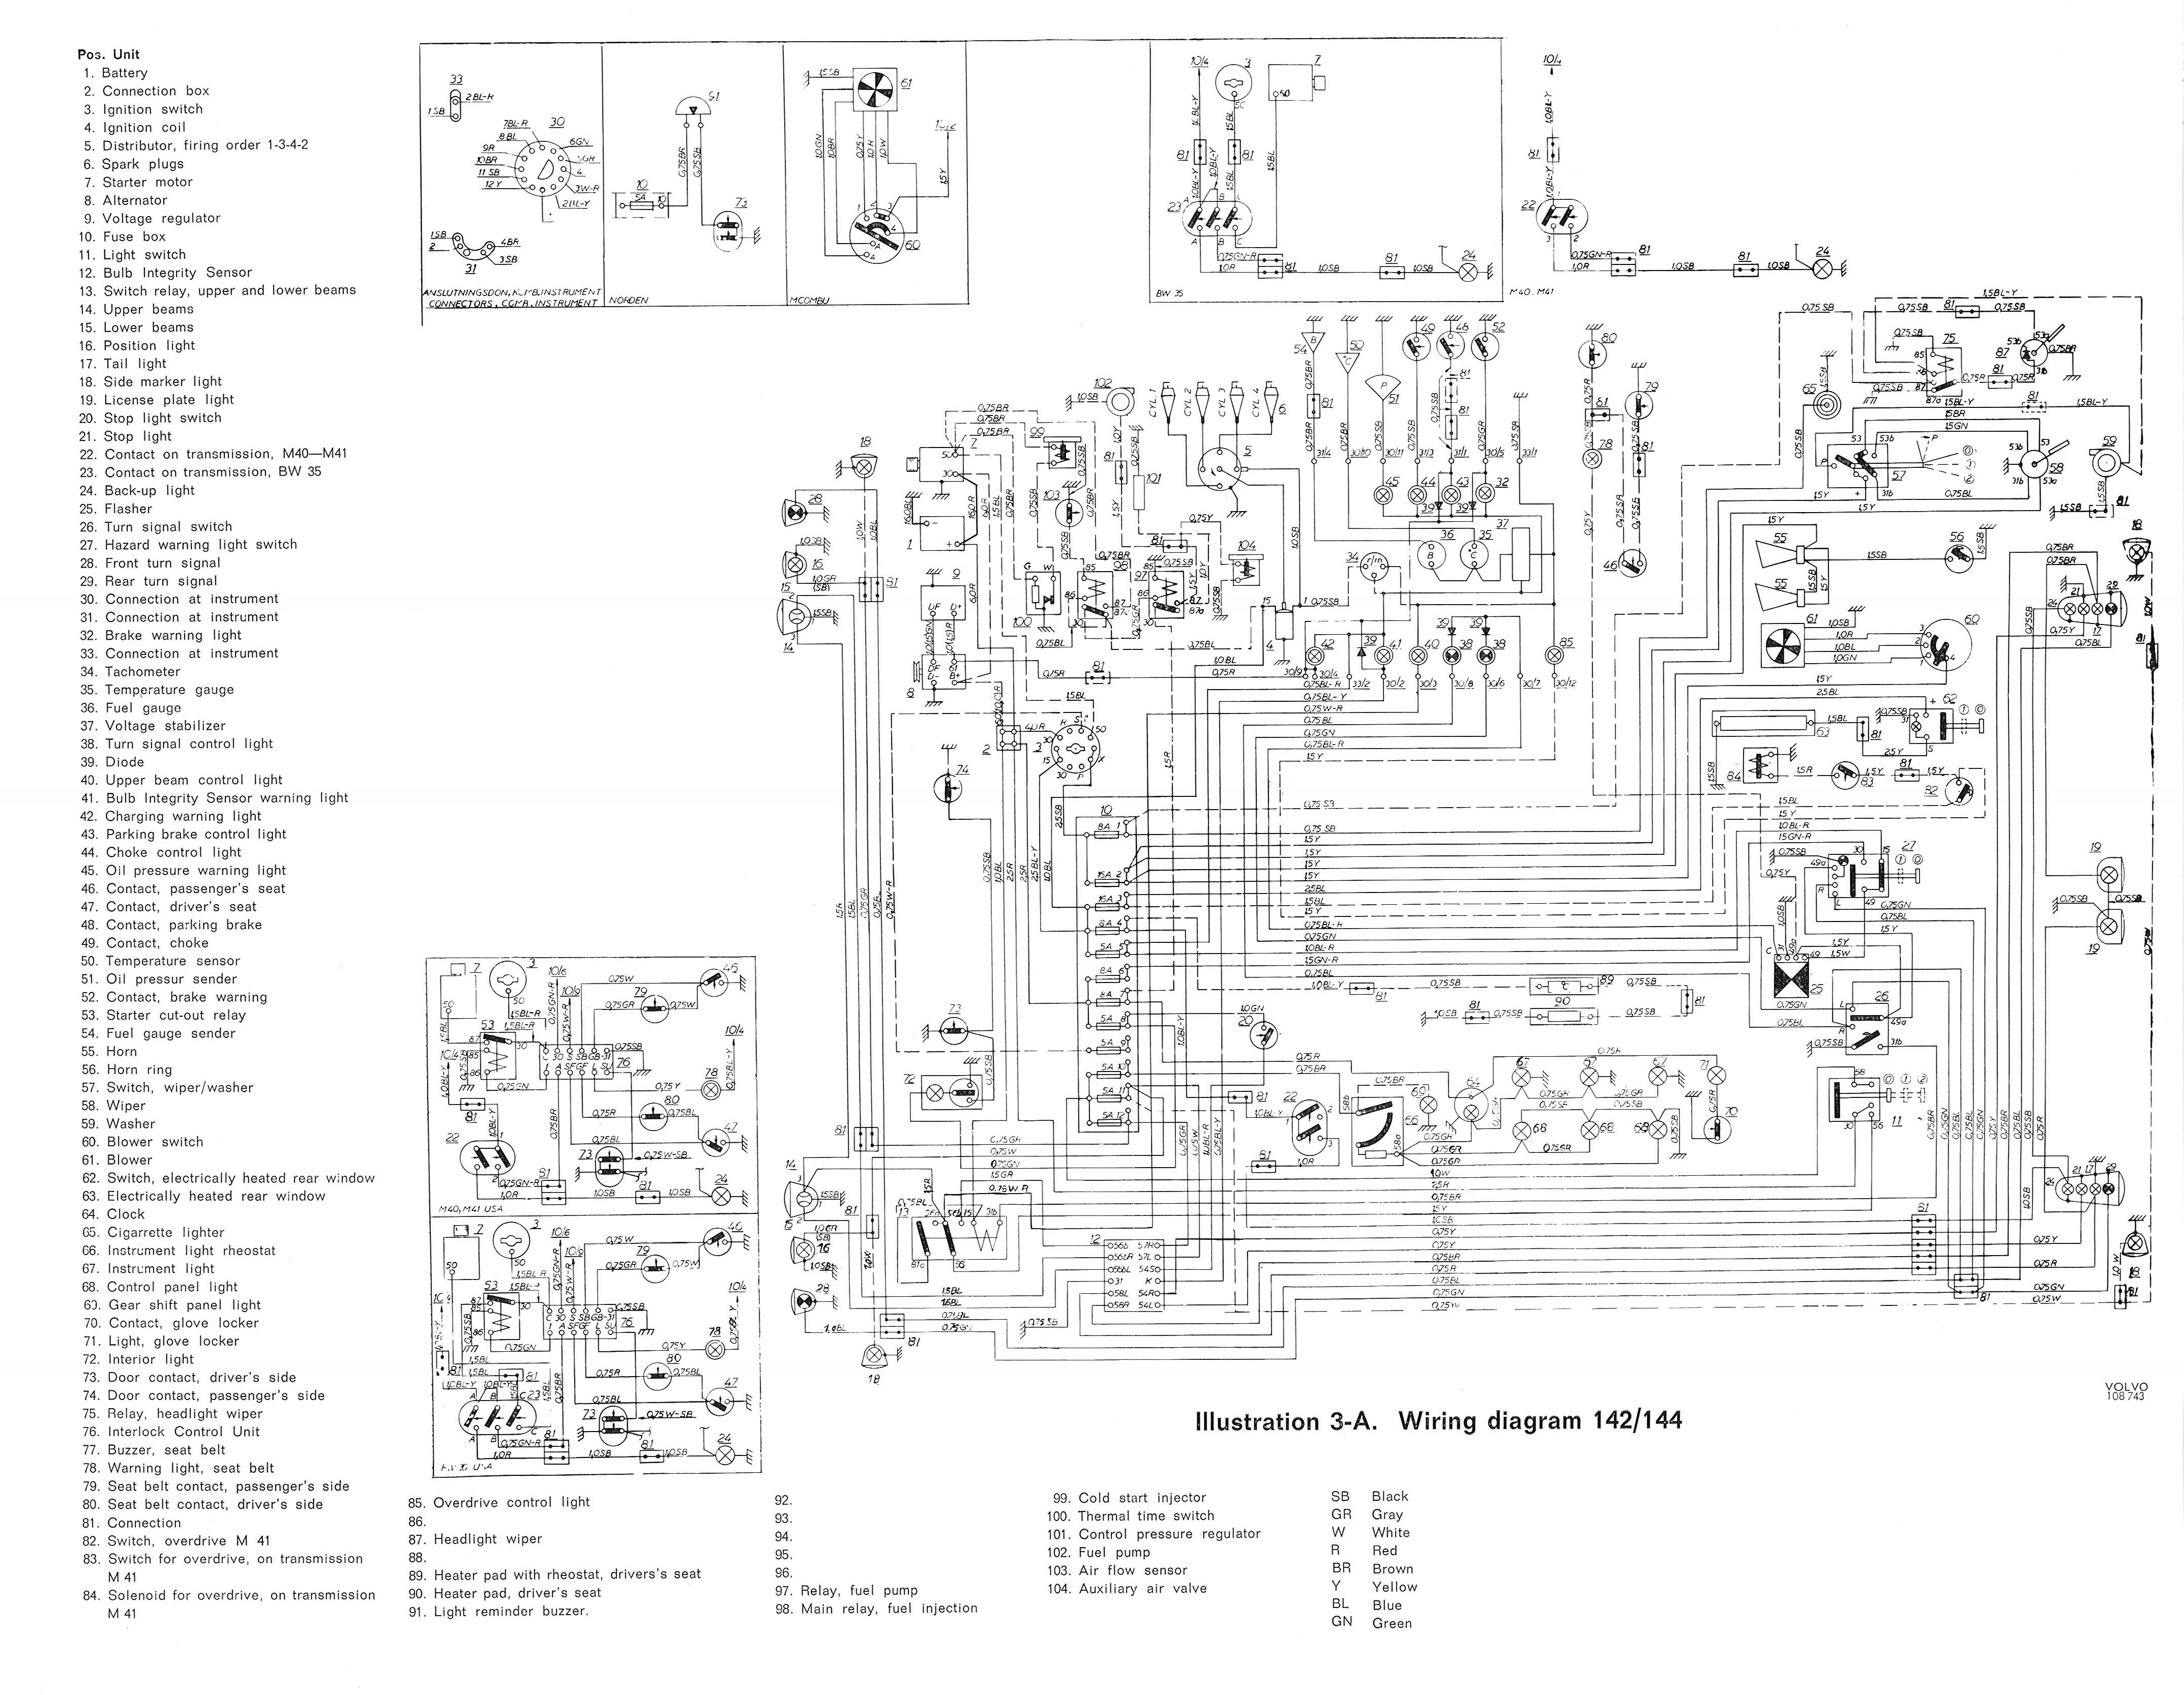 Volvo 1974 142 Wiring Diagram | Wiring Diagram Database